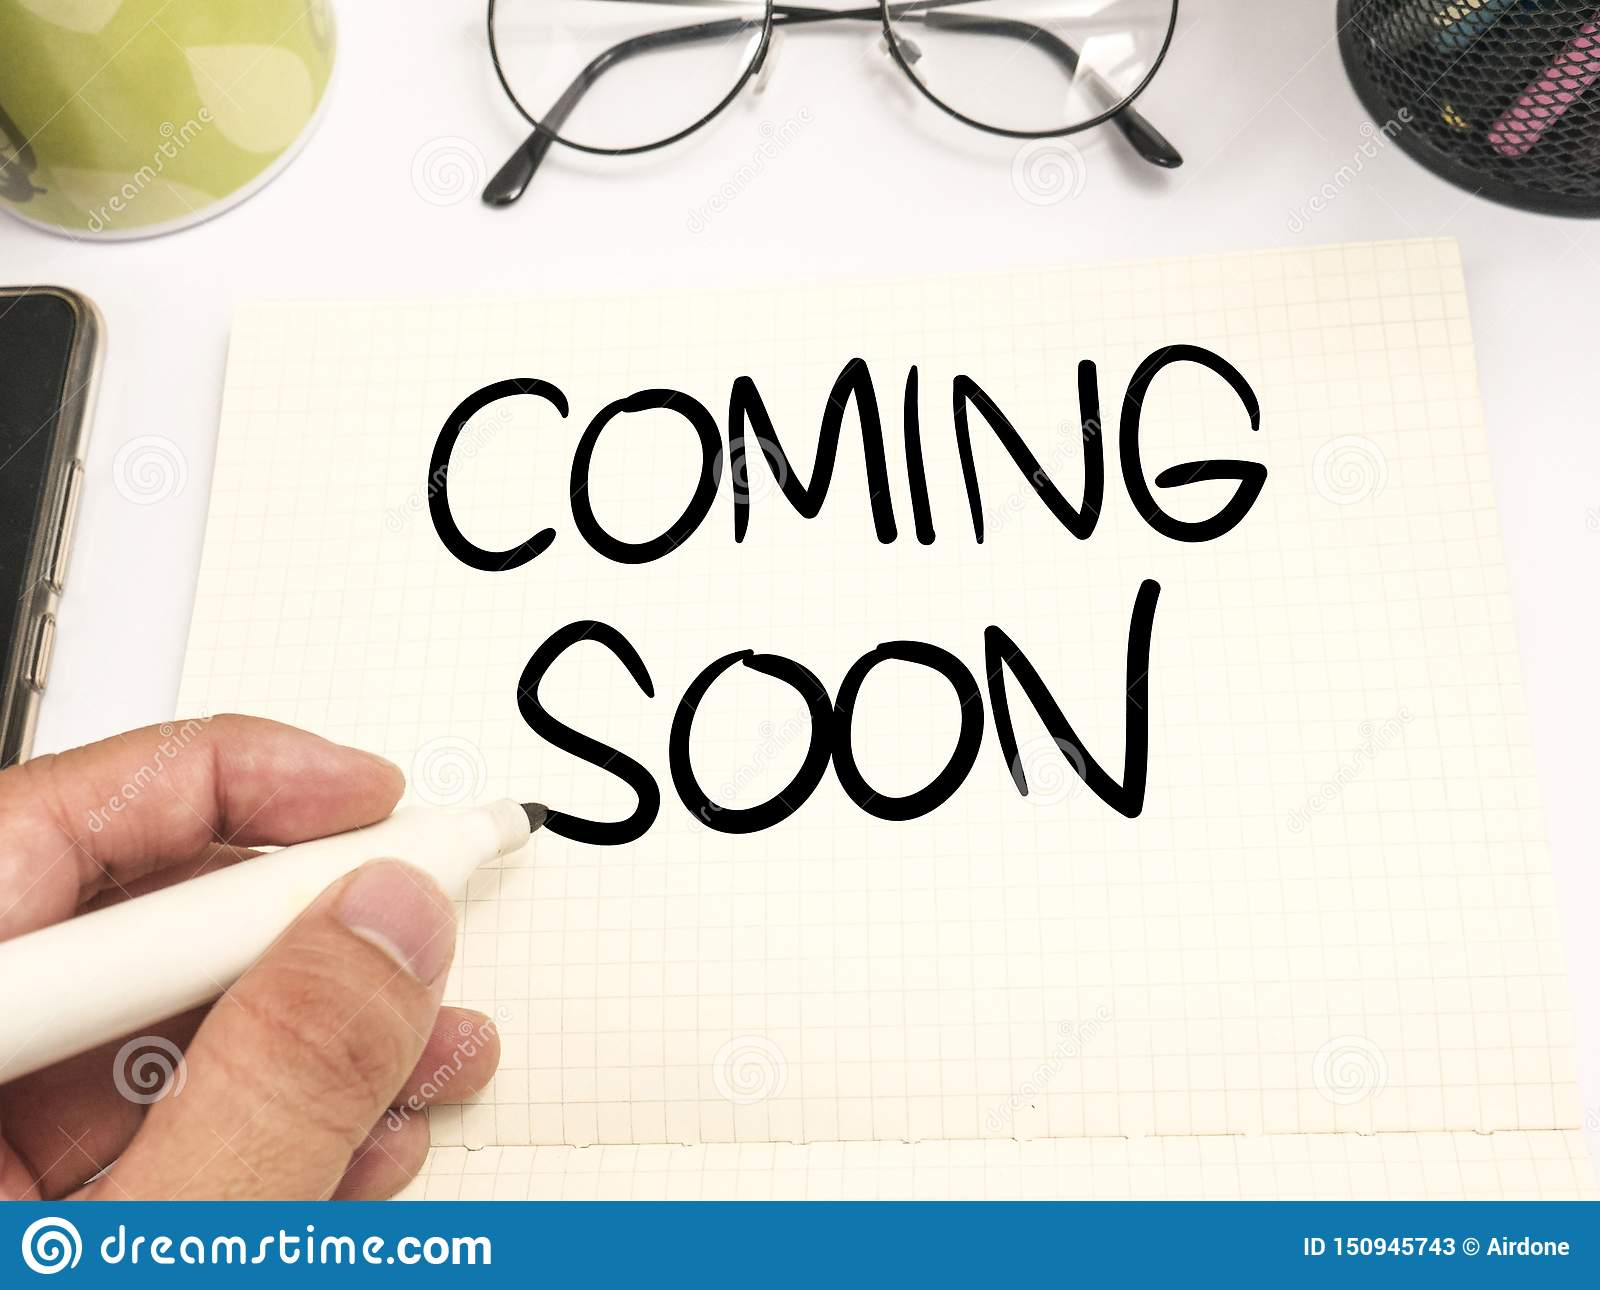 Coming Soon Words Typography Concept Stock Image Image Of Notification Announcement 150945743